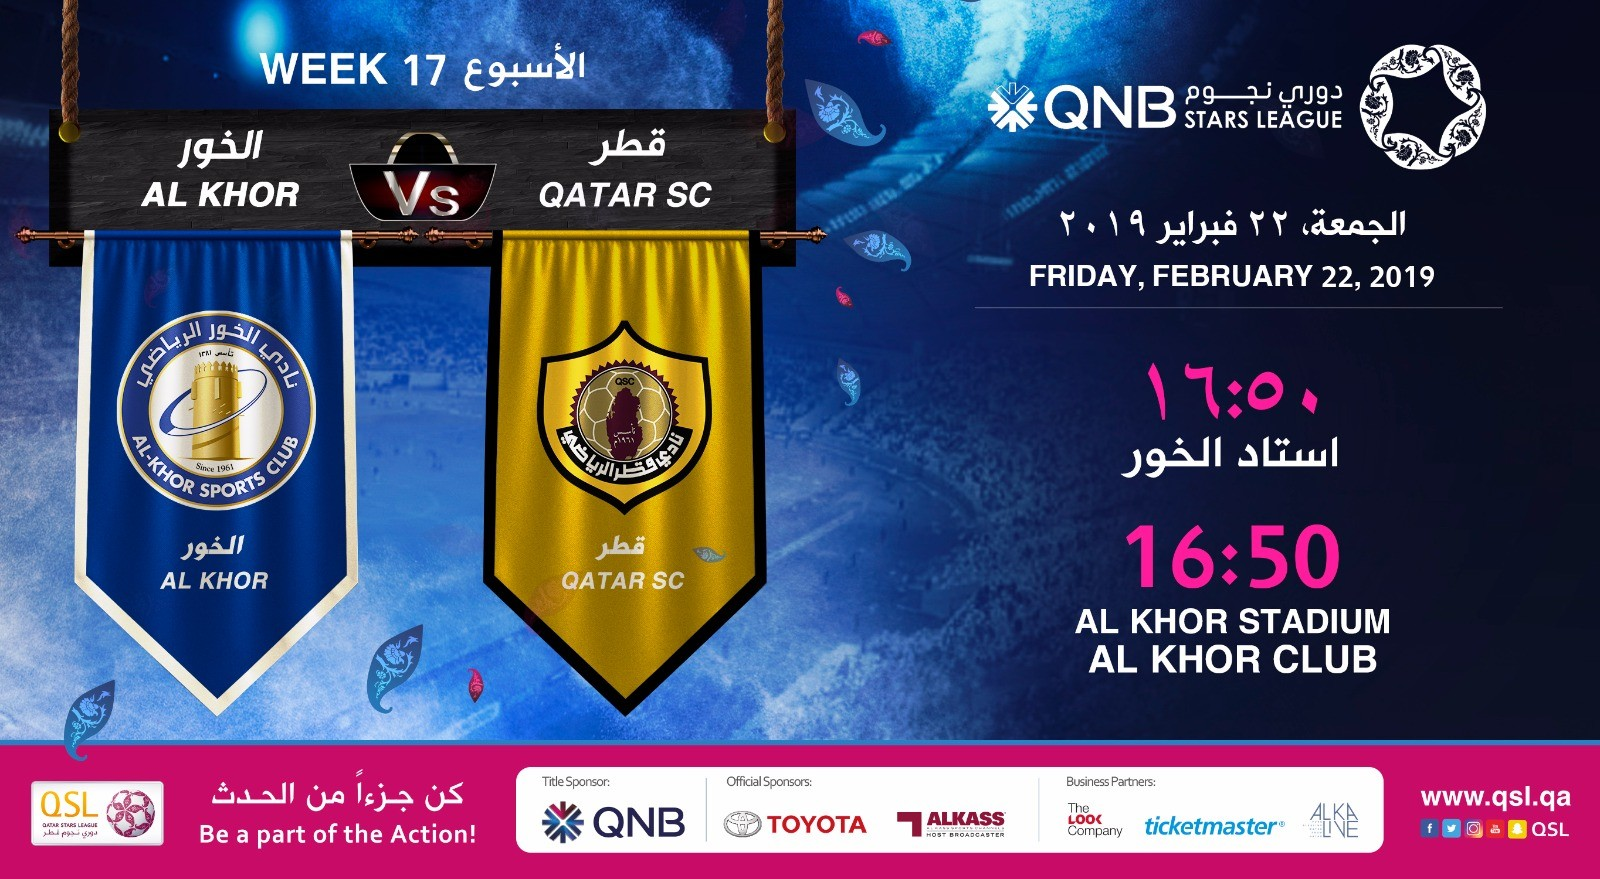 QNB Stars League Week 17 — Al Khor vs Qatar SC